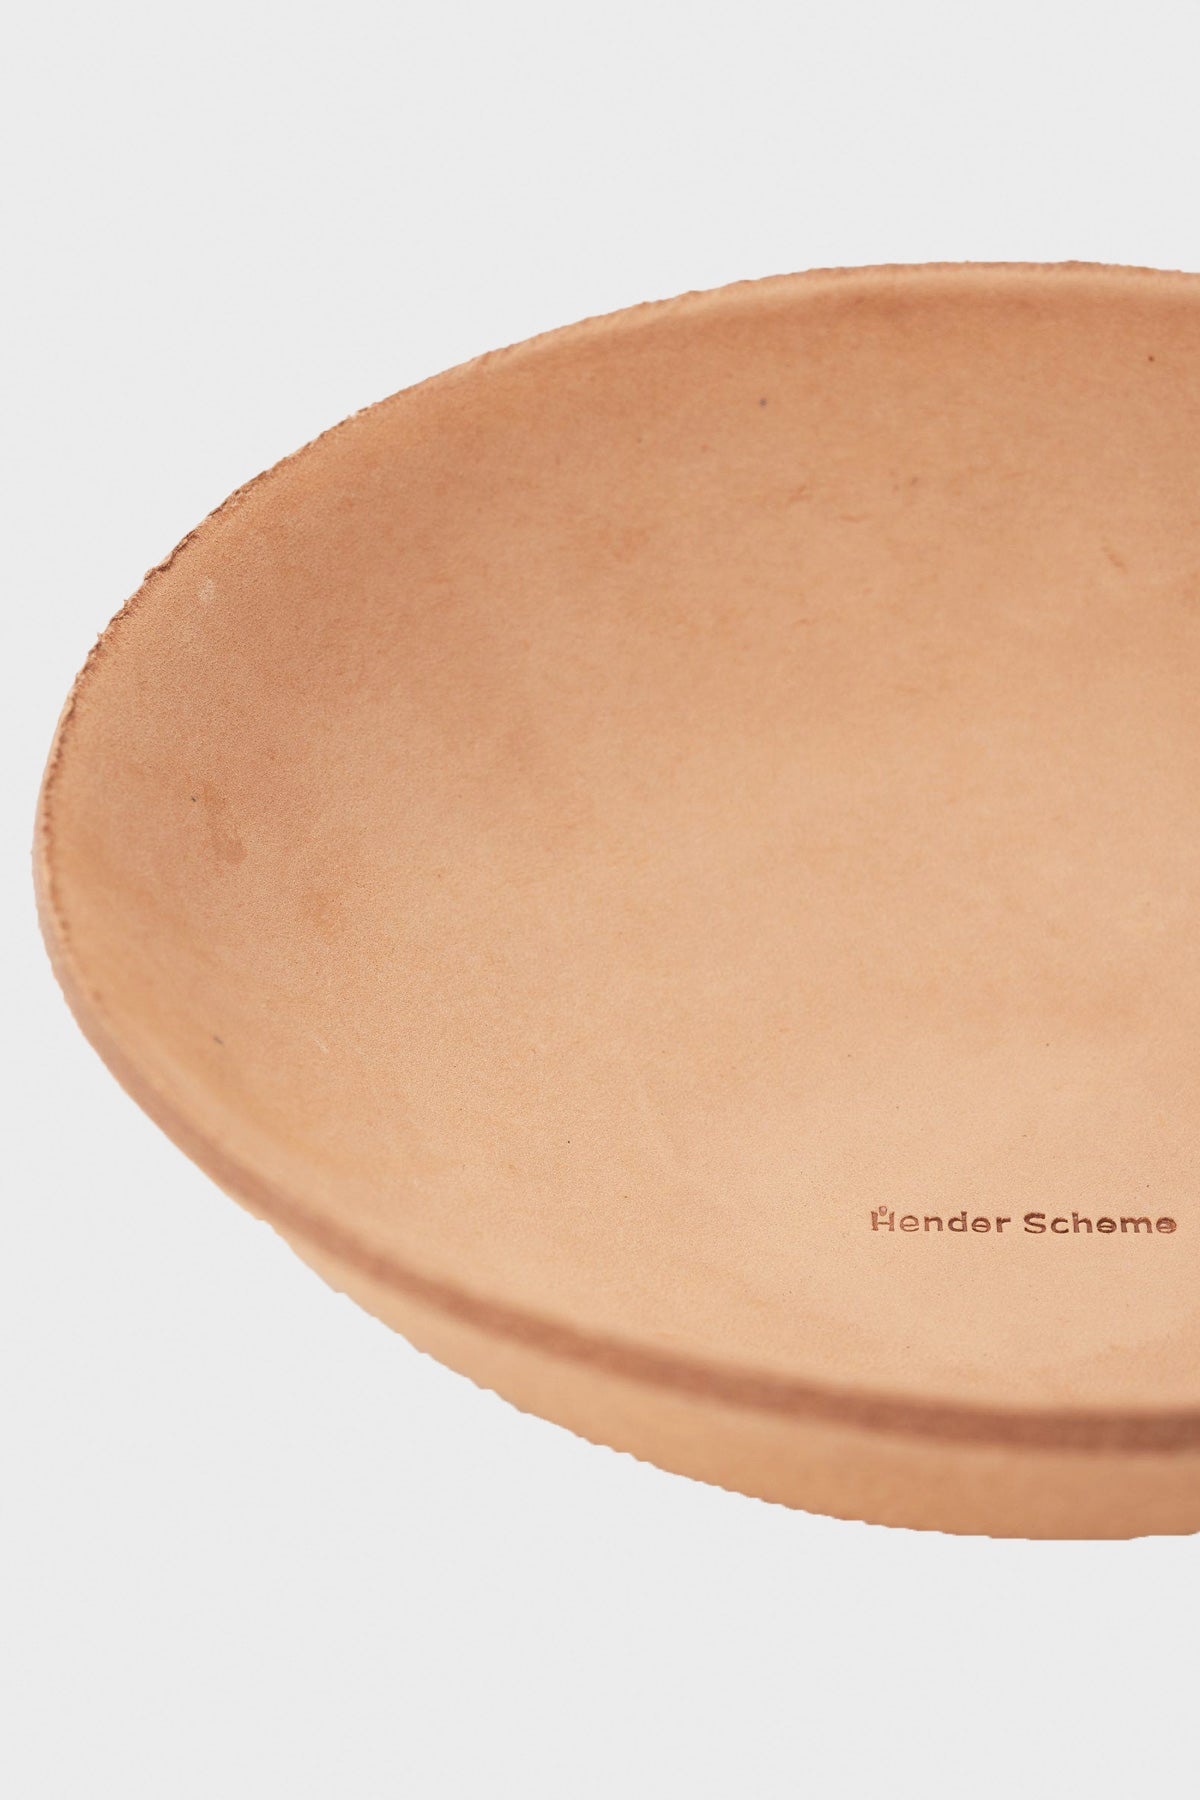 Hender Scheme - Bowl - Natural - Canoe Club